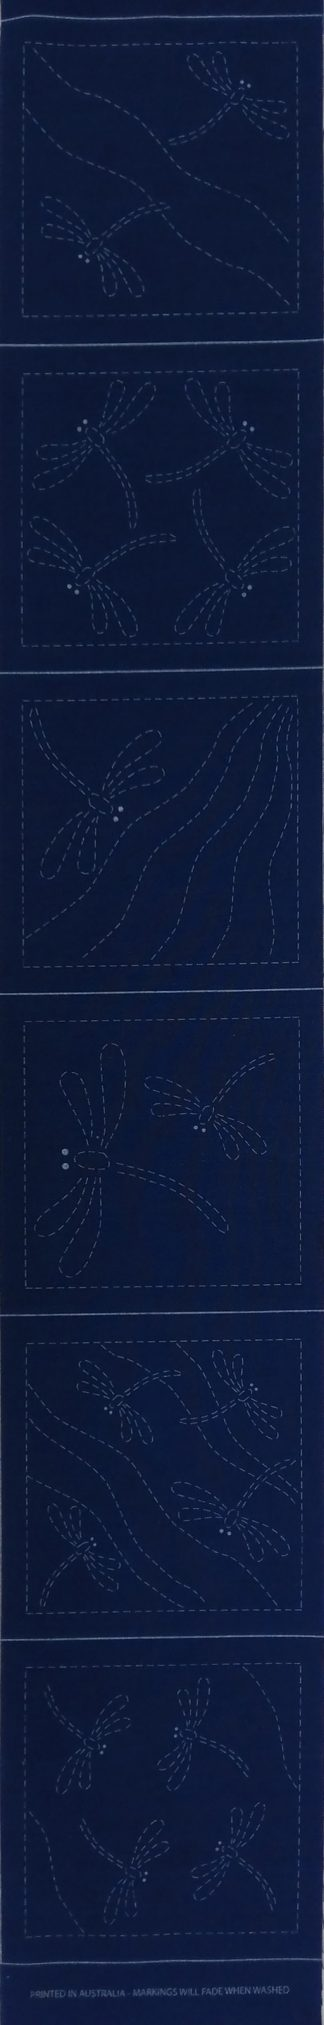 Sashiko Panel Dragonfly Coaster Runner Set No.DFCR-Indigo